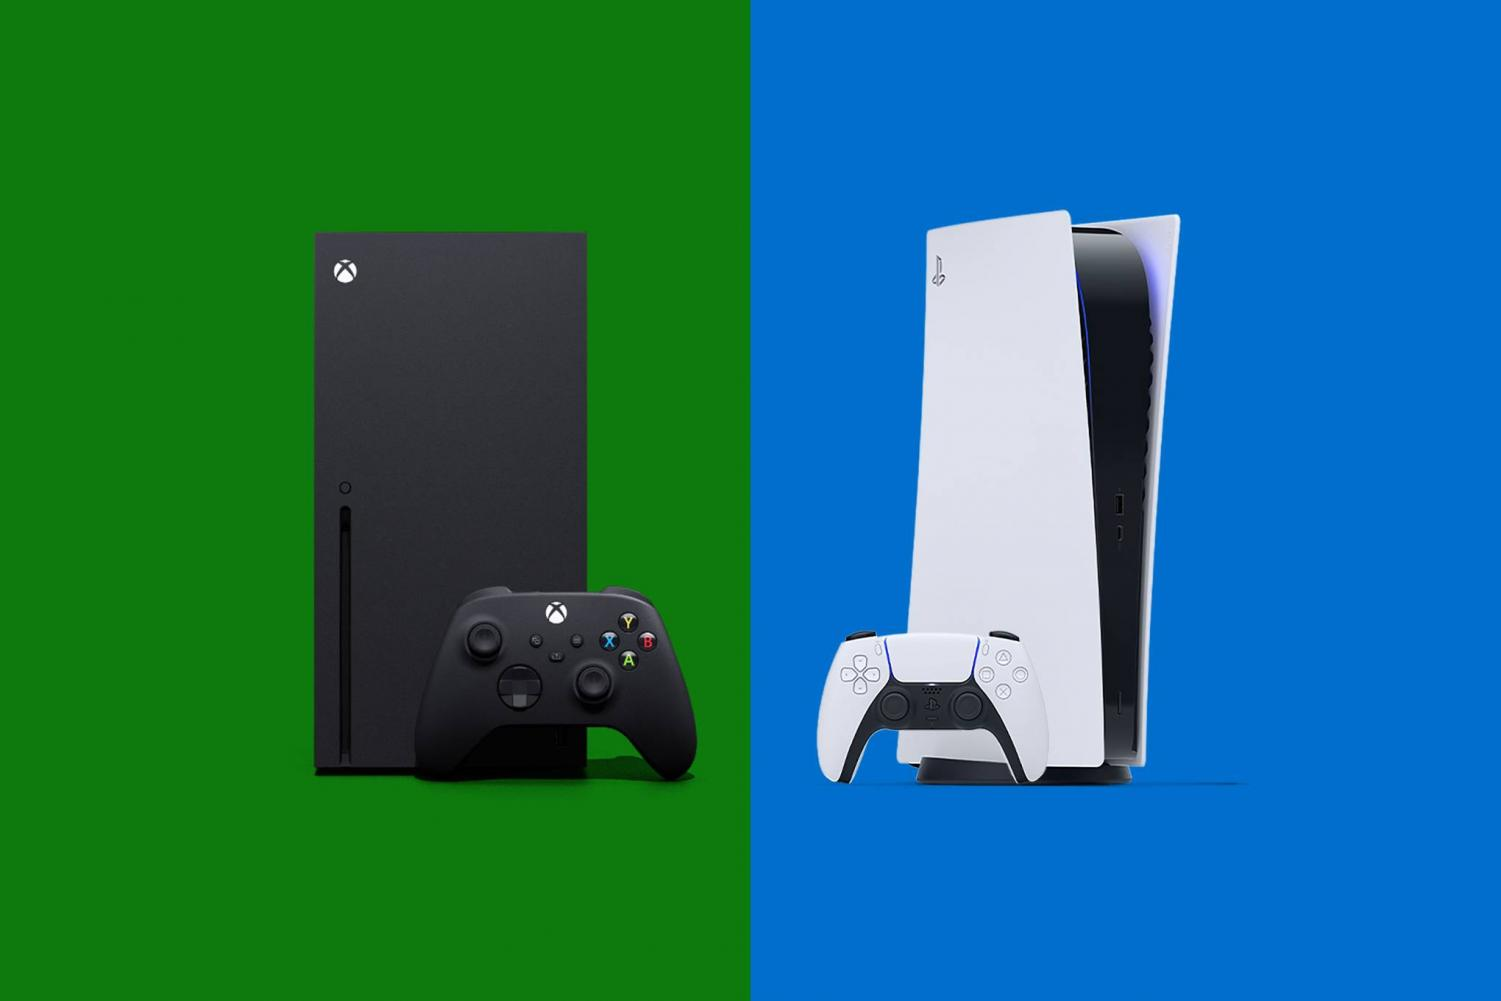 This year, Sony and Microsoft have both released new gaming consoles.